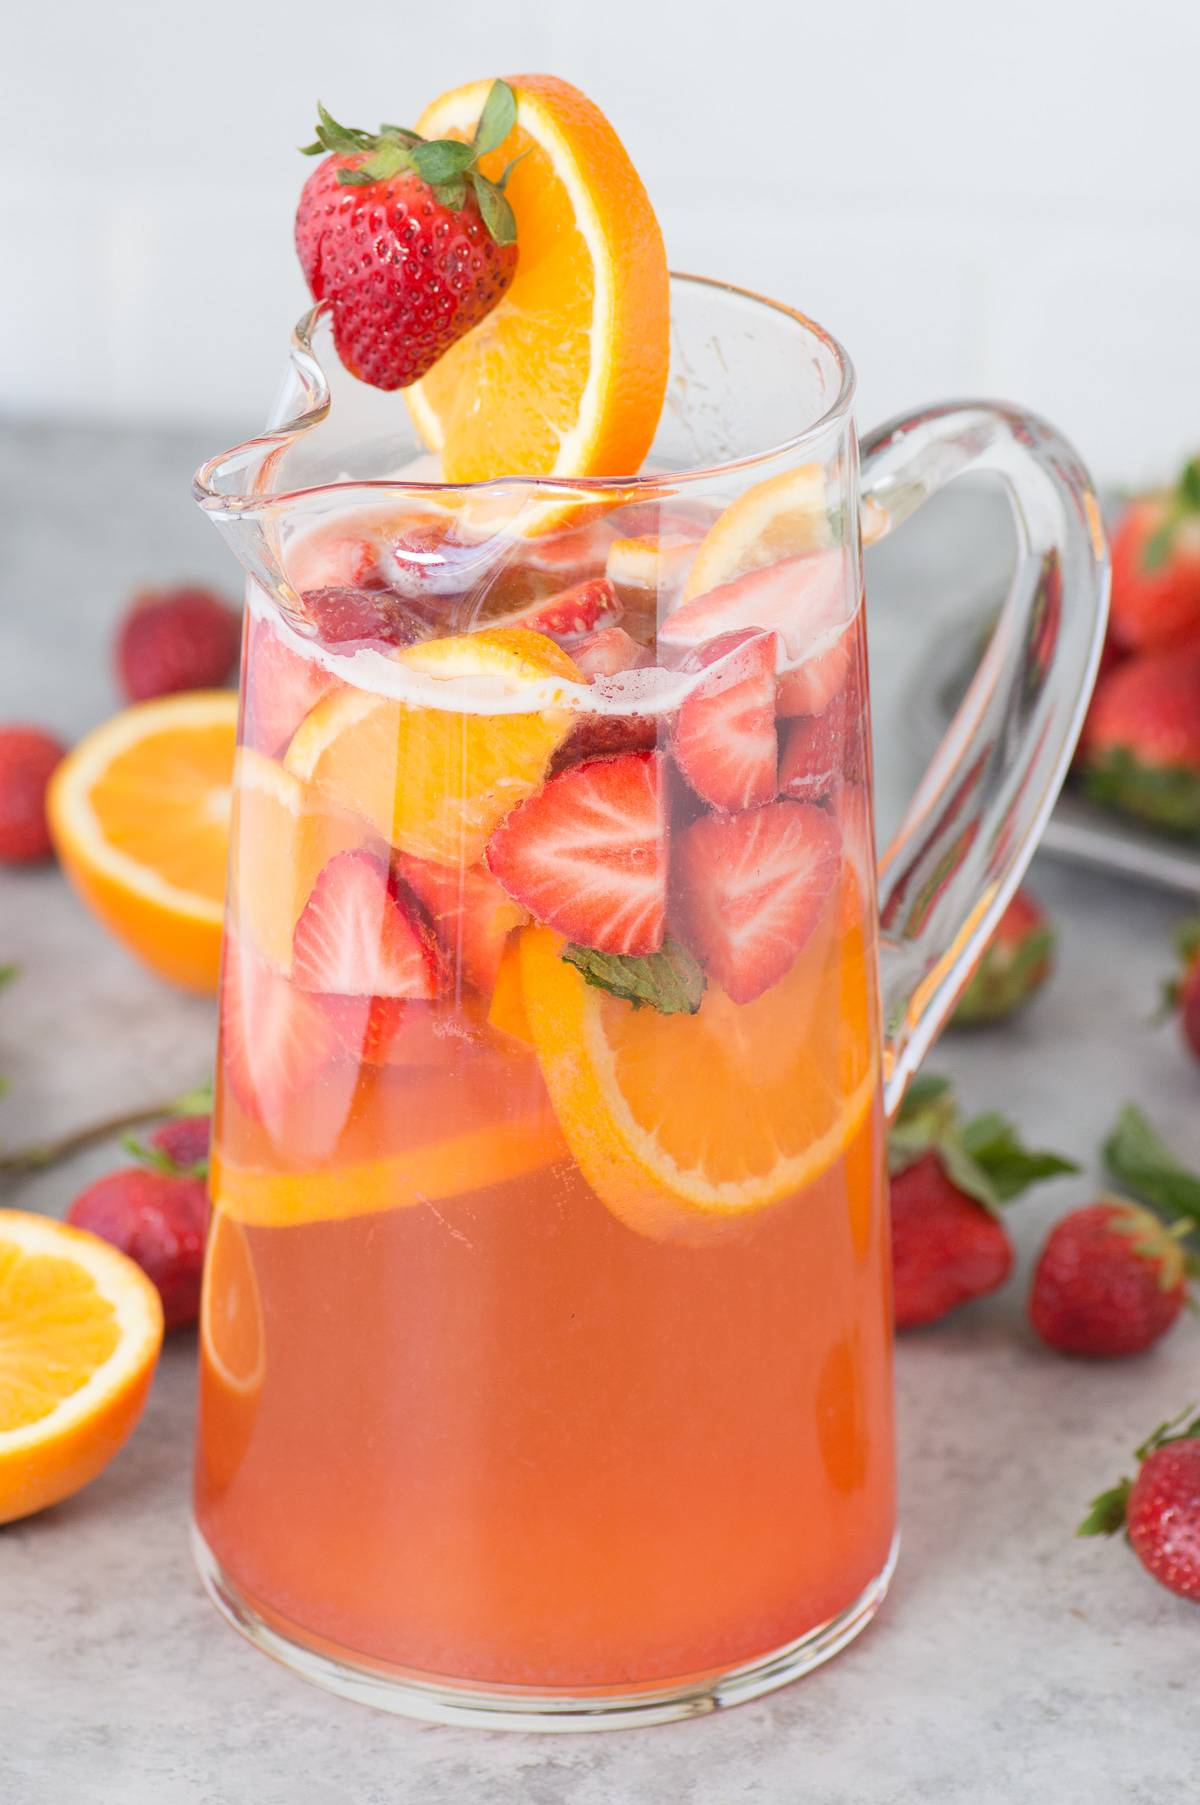 Glass pitcher of delicious Strawberry Sangria with sliced oranges and fresh strawberries.